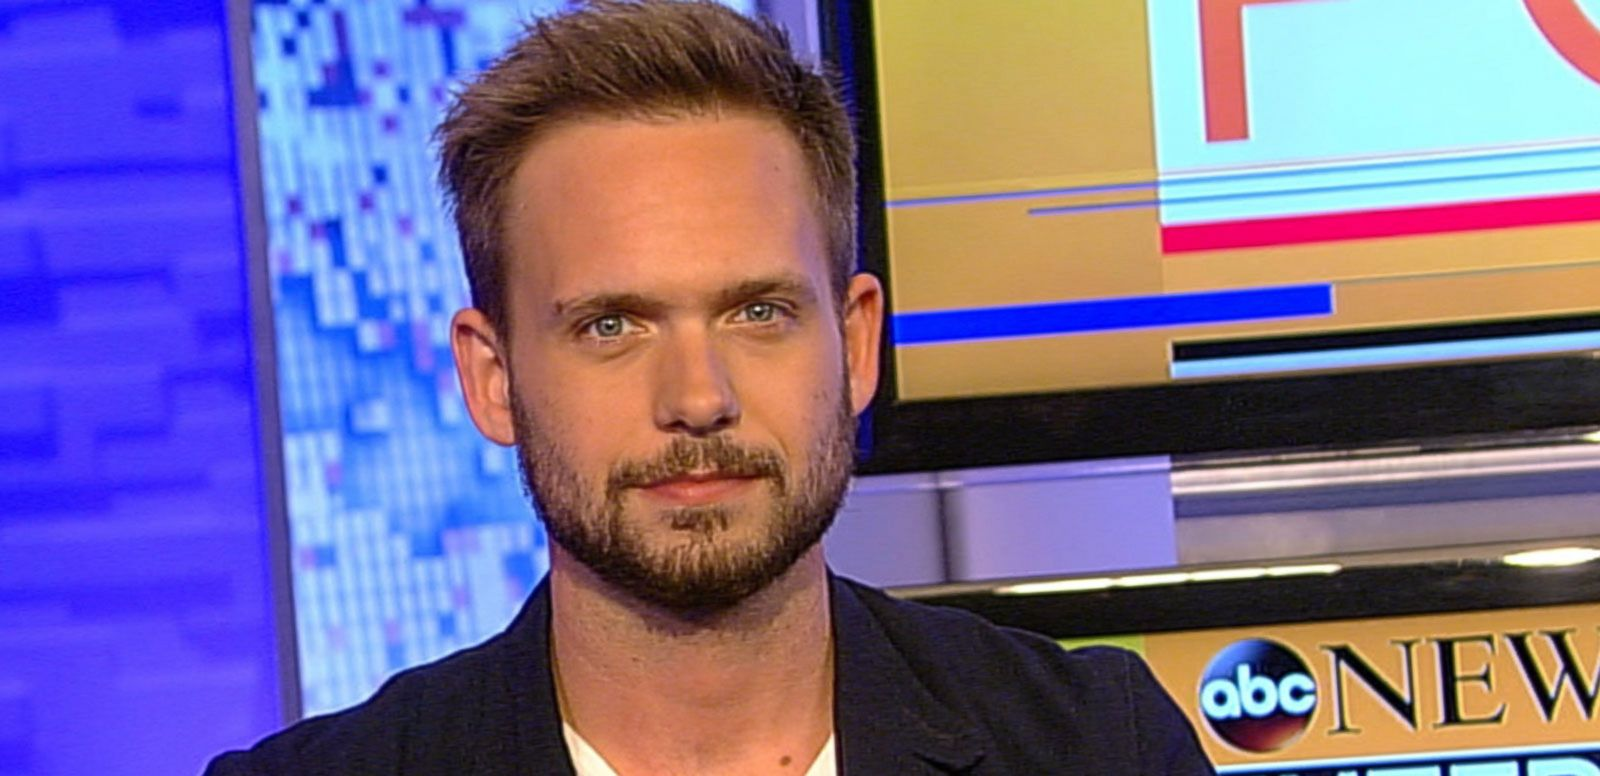 VIDEO: One-on-One With Patrick J. Adams